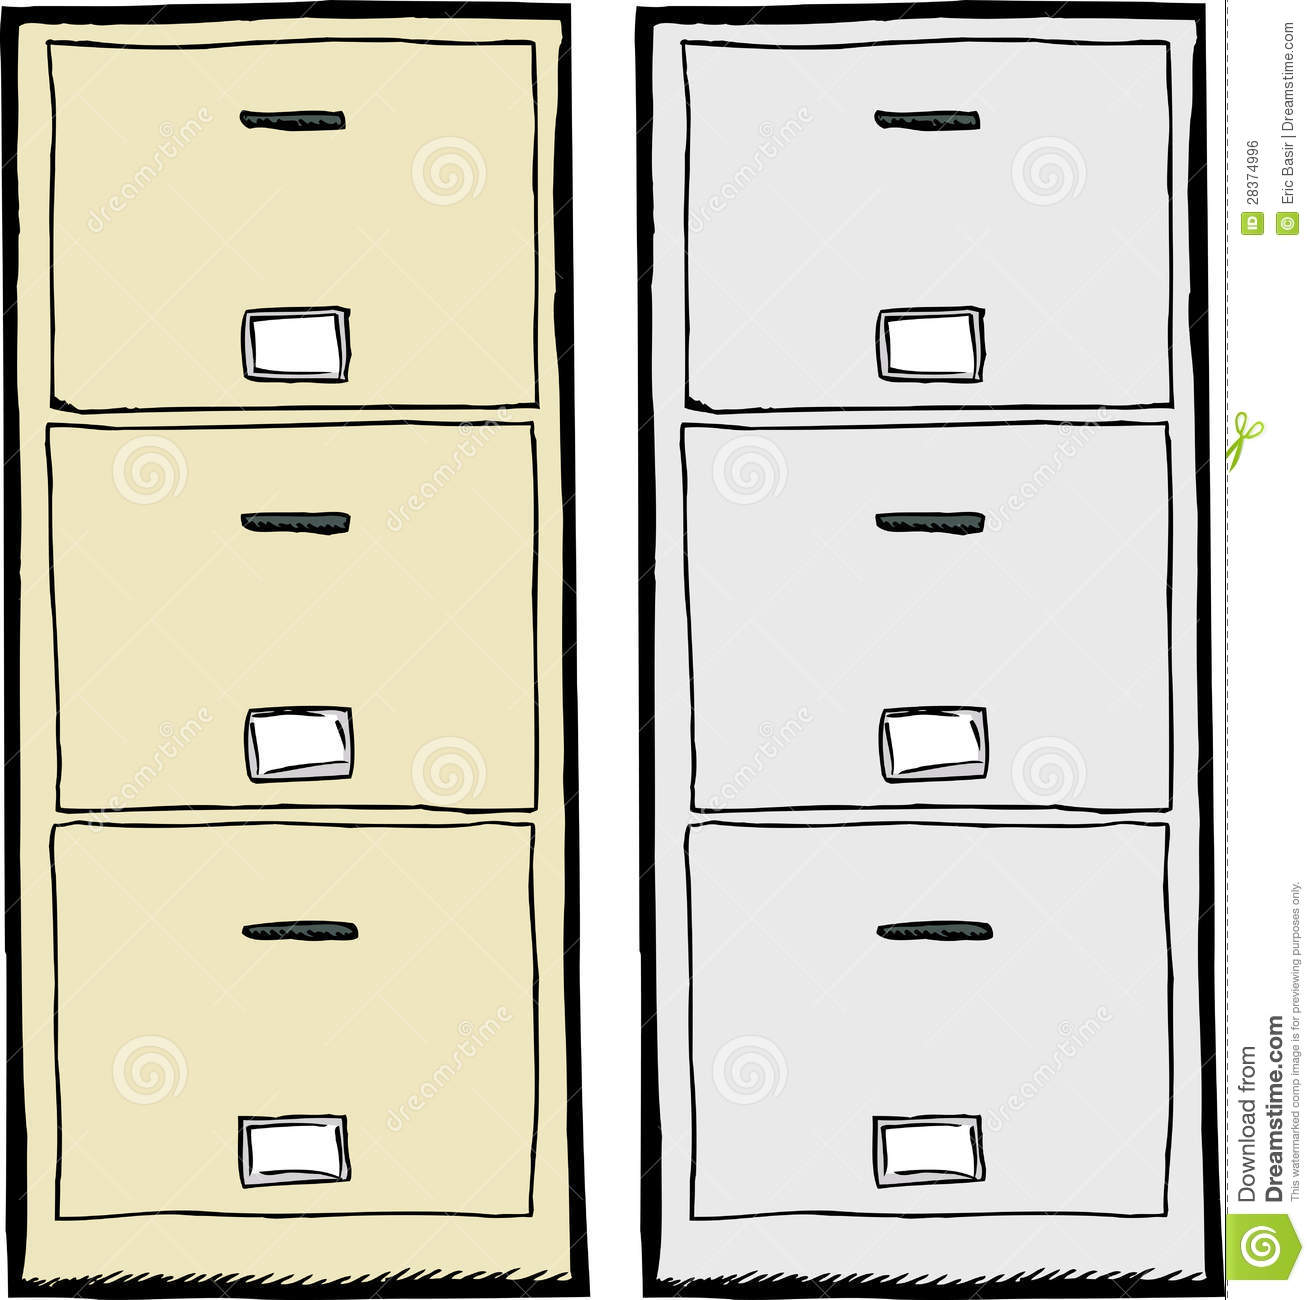 Office Designs 18 Deep 3Drawer Utility File Cabinet